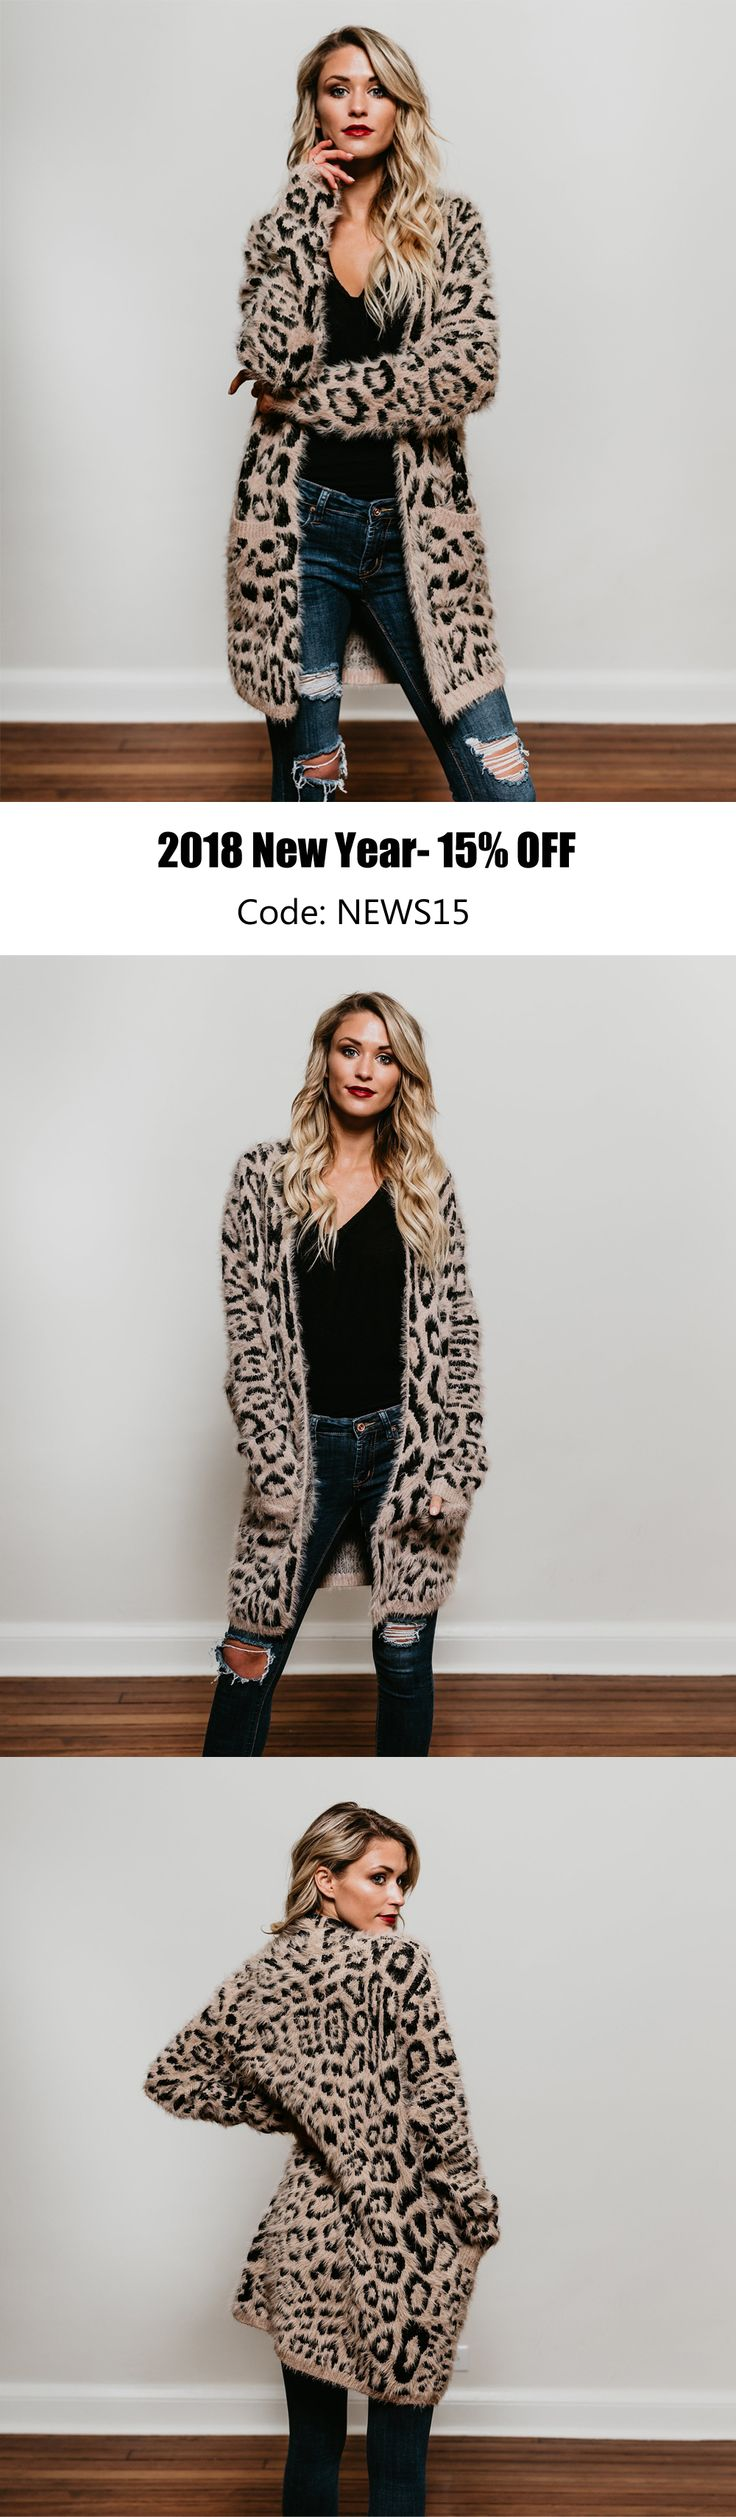 Cute cute! I actually just saw a very similar leopard cardigan at Nordstrom's last weekend. $75 (Jan /2018)